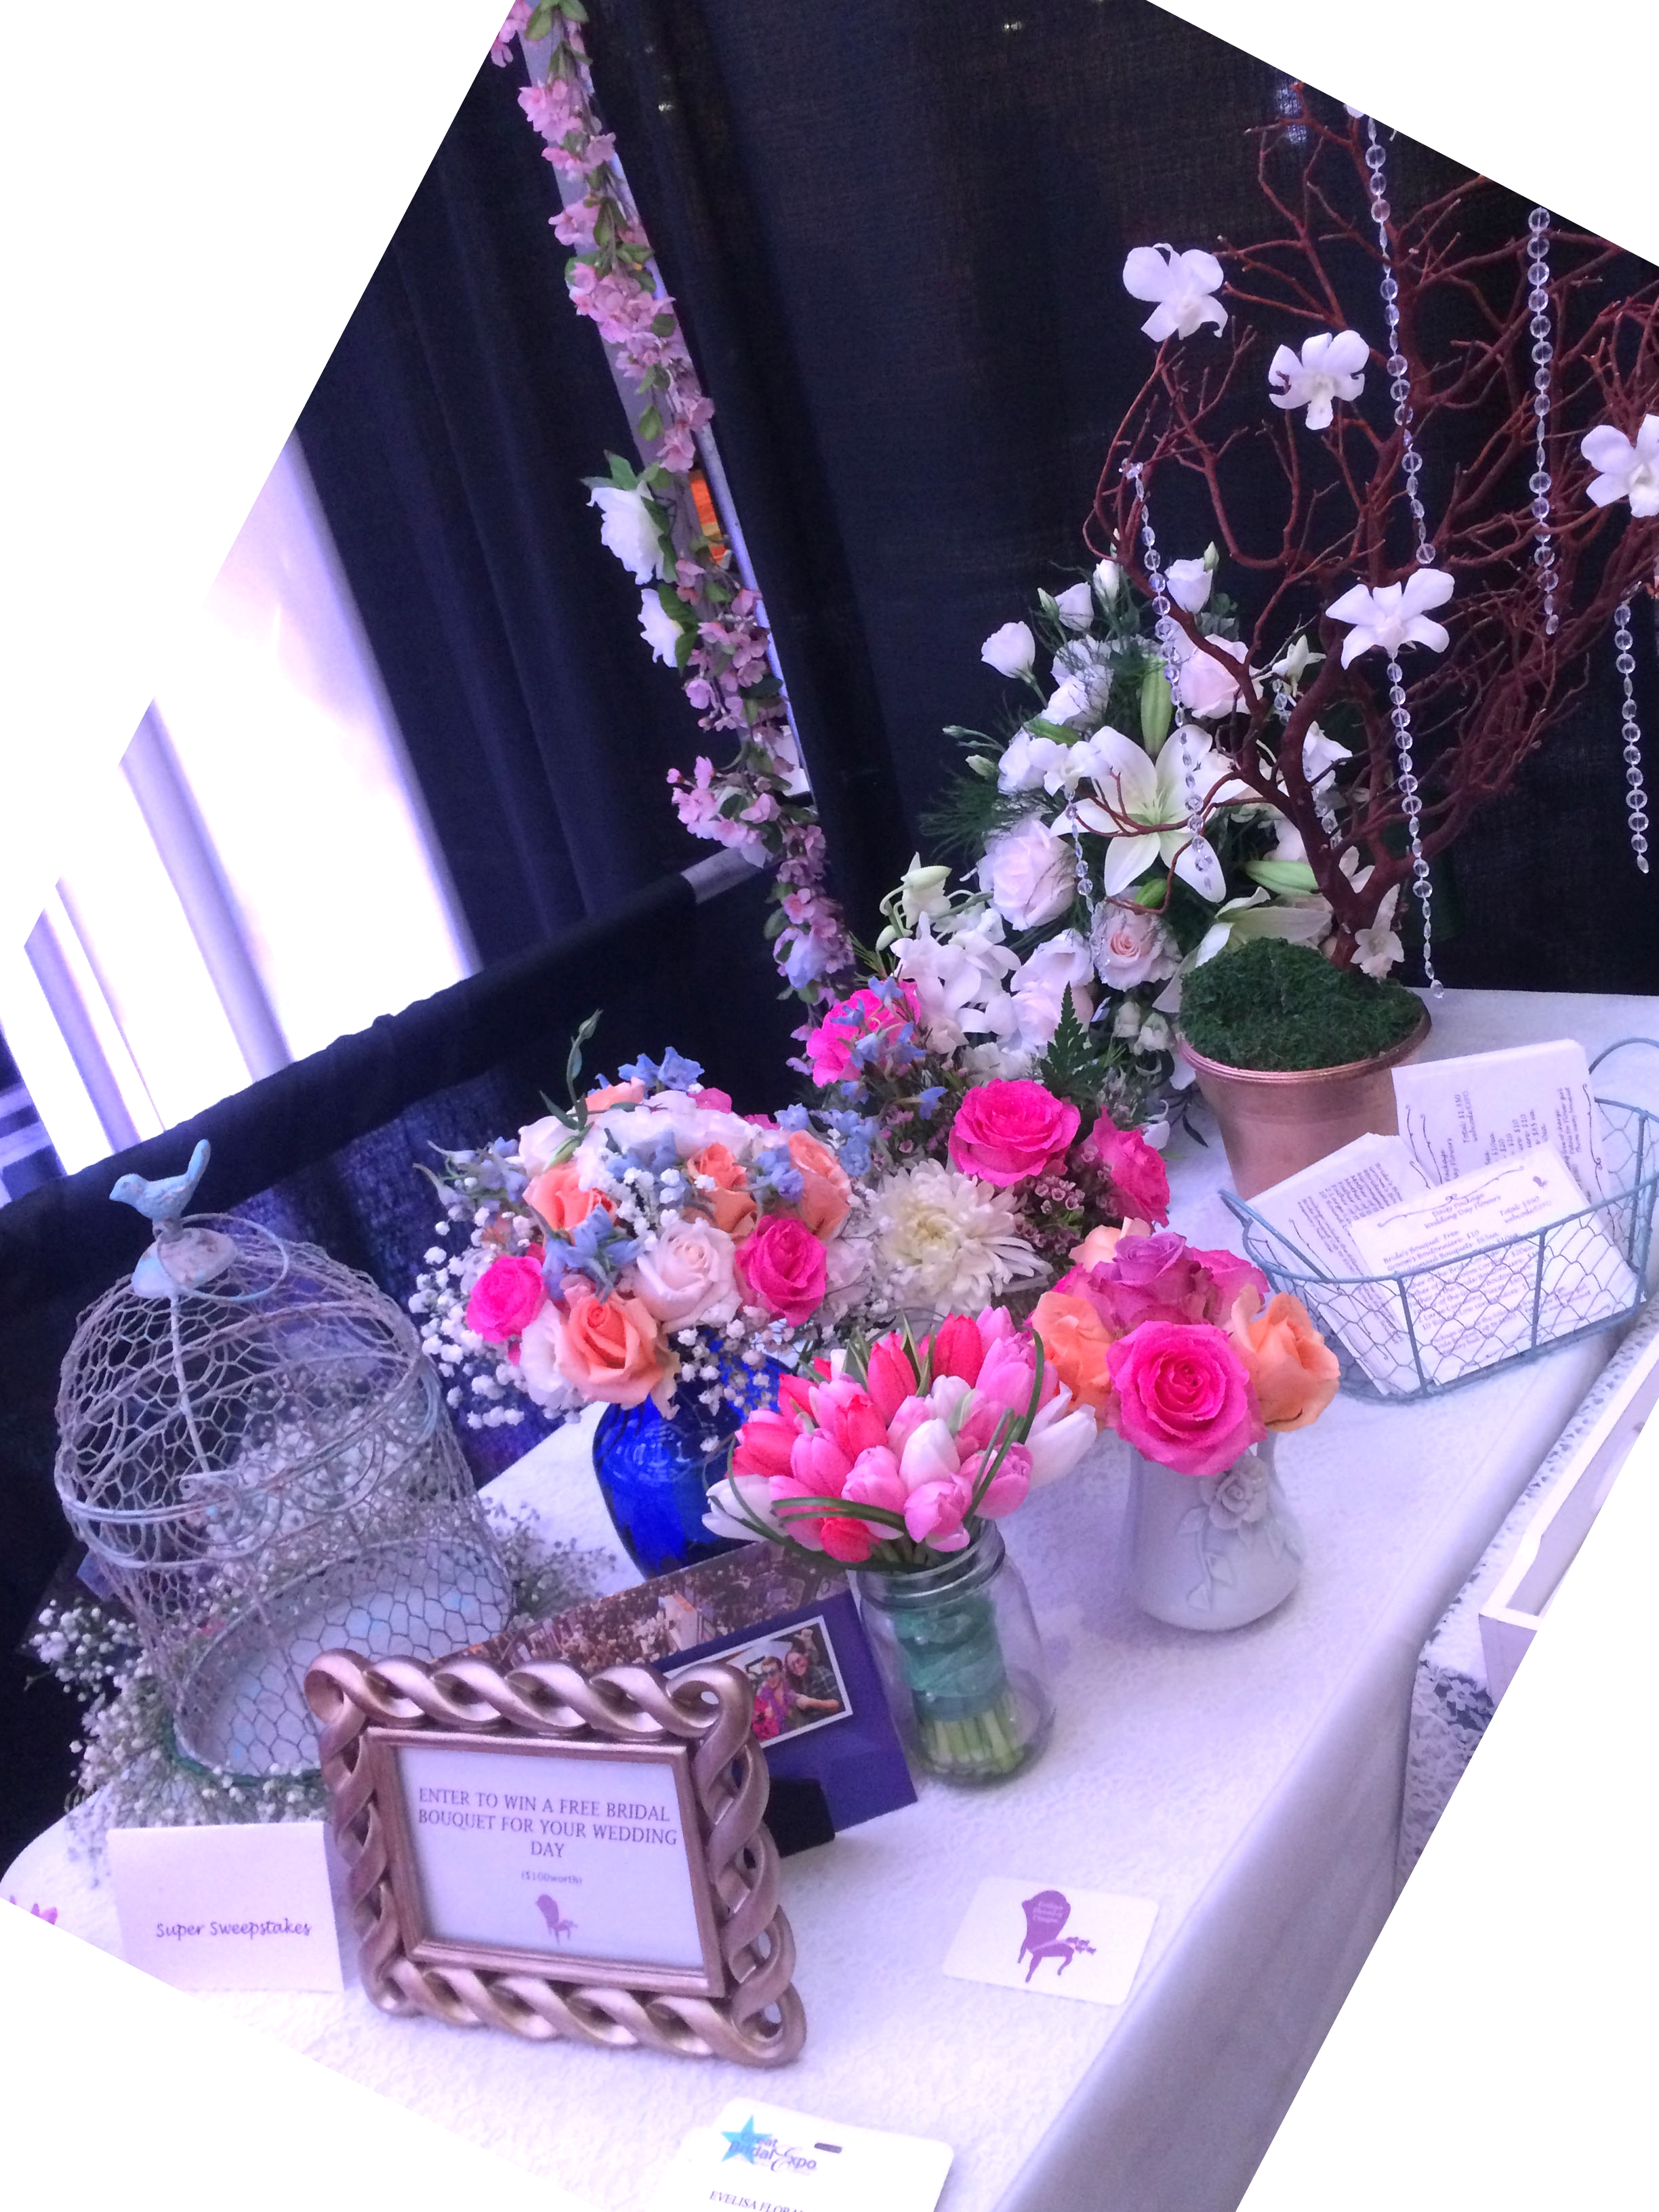 Our Setup with our bouquets in vases to drink water